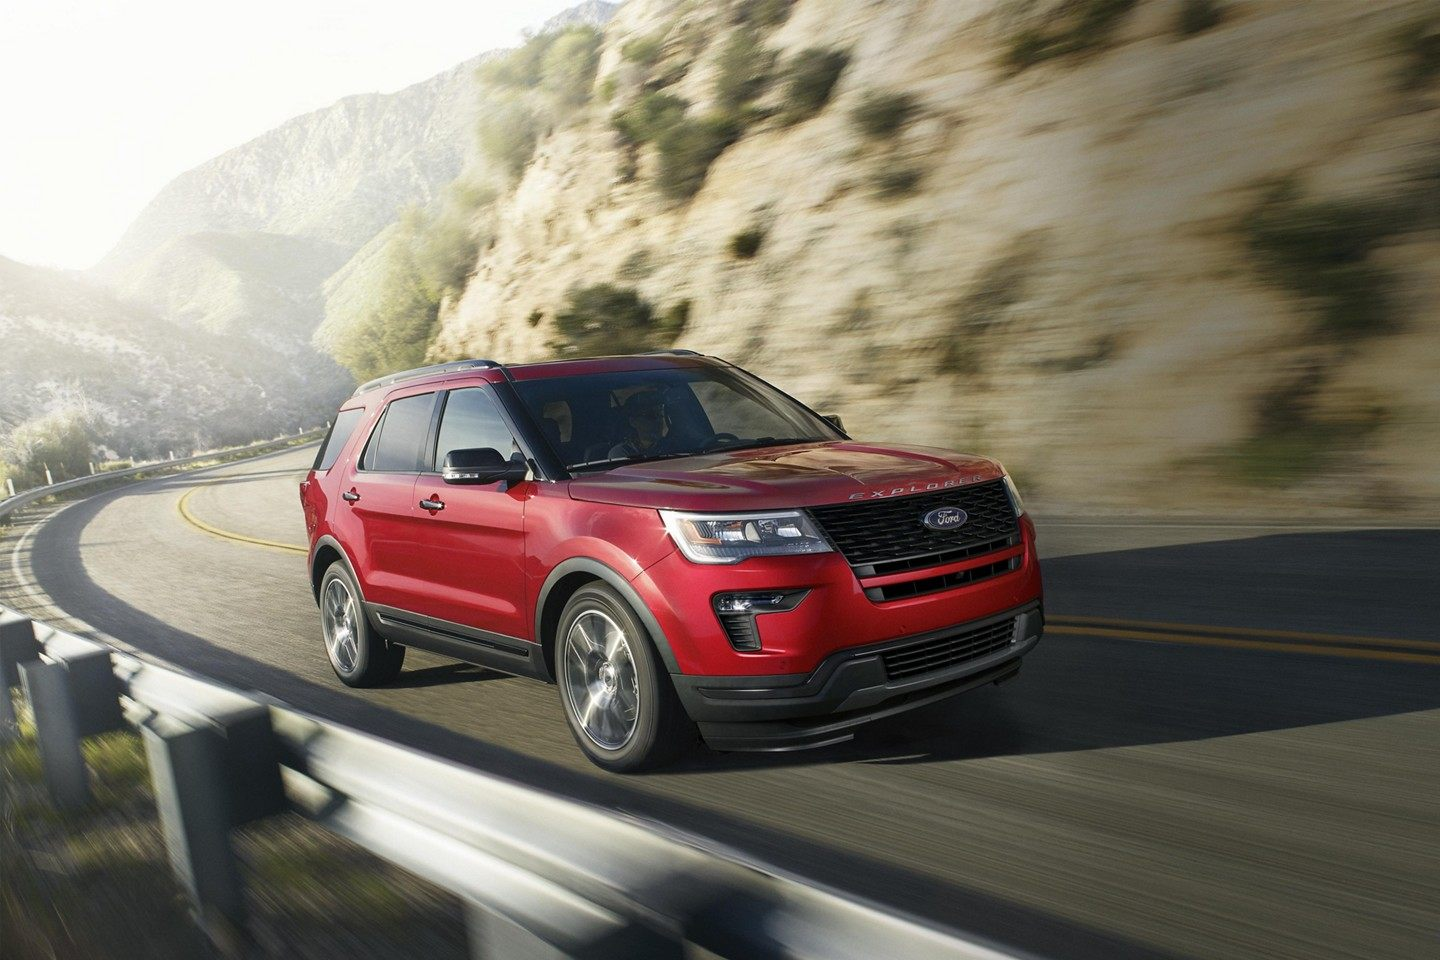 2019 Ford Explorer Elkhart, IN